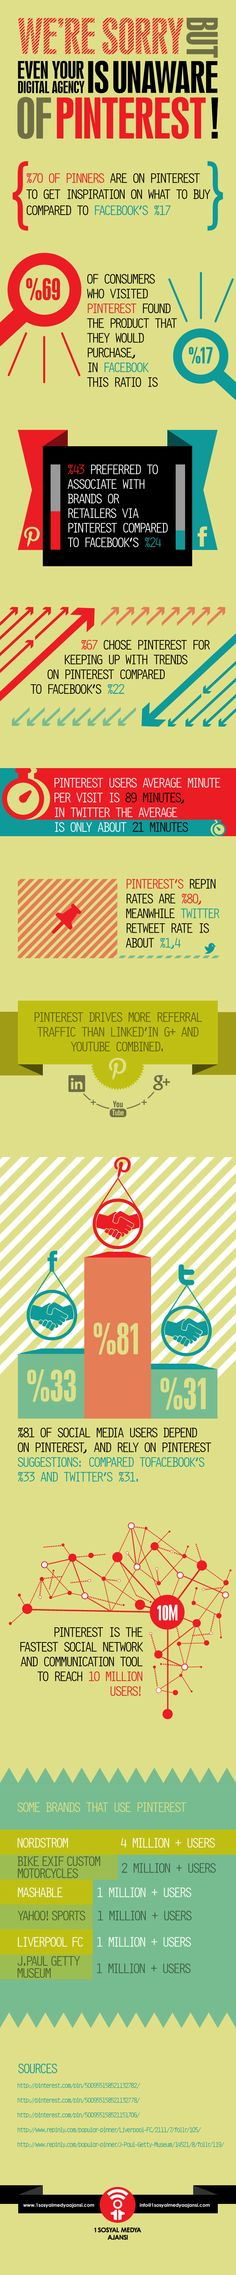 Pinterest Secrets Infographic! Why #Pinterest is the right place for those who want to advertise their product.